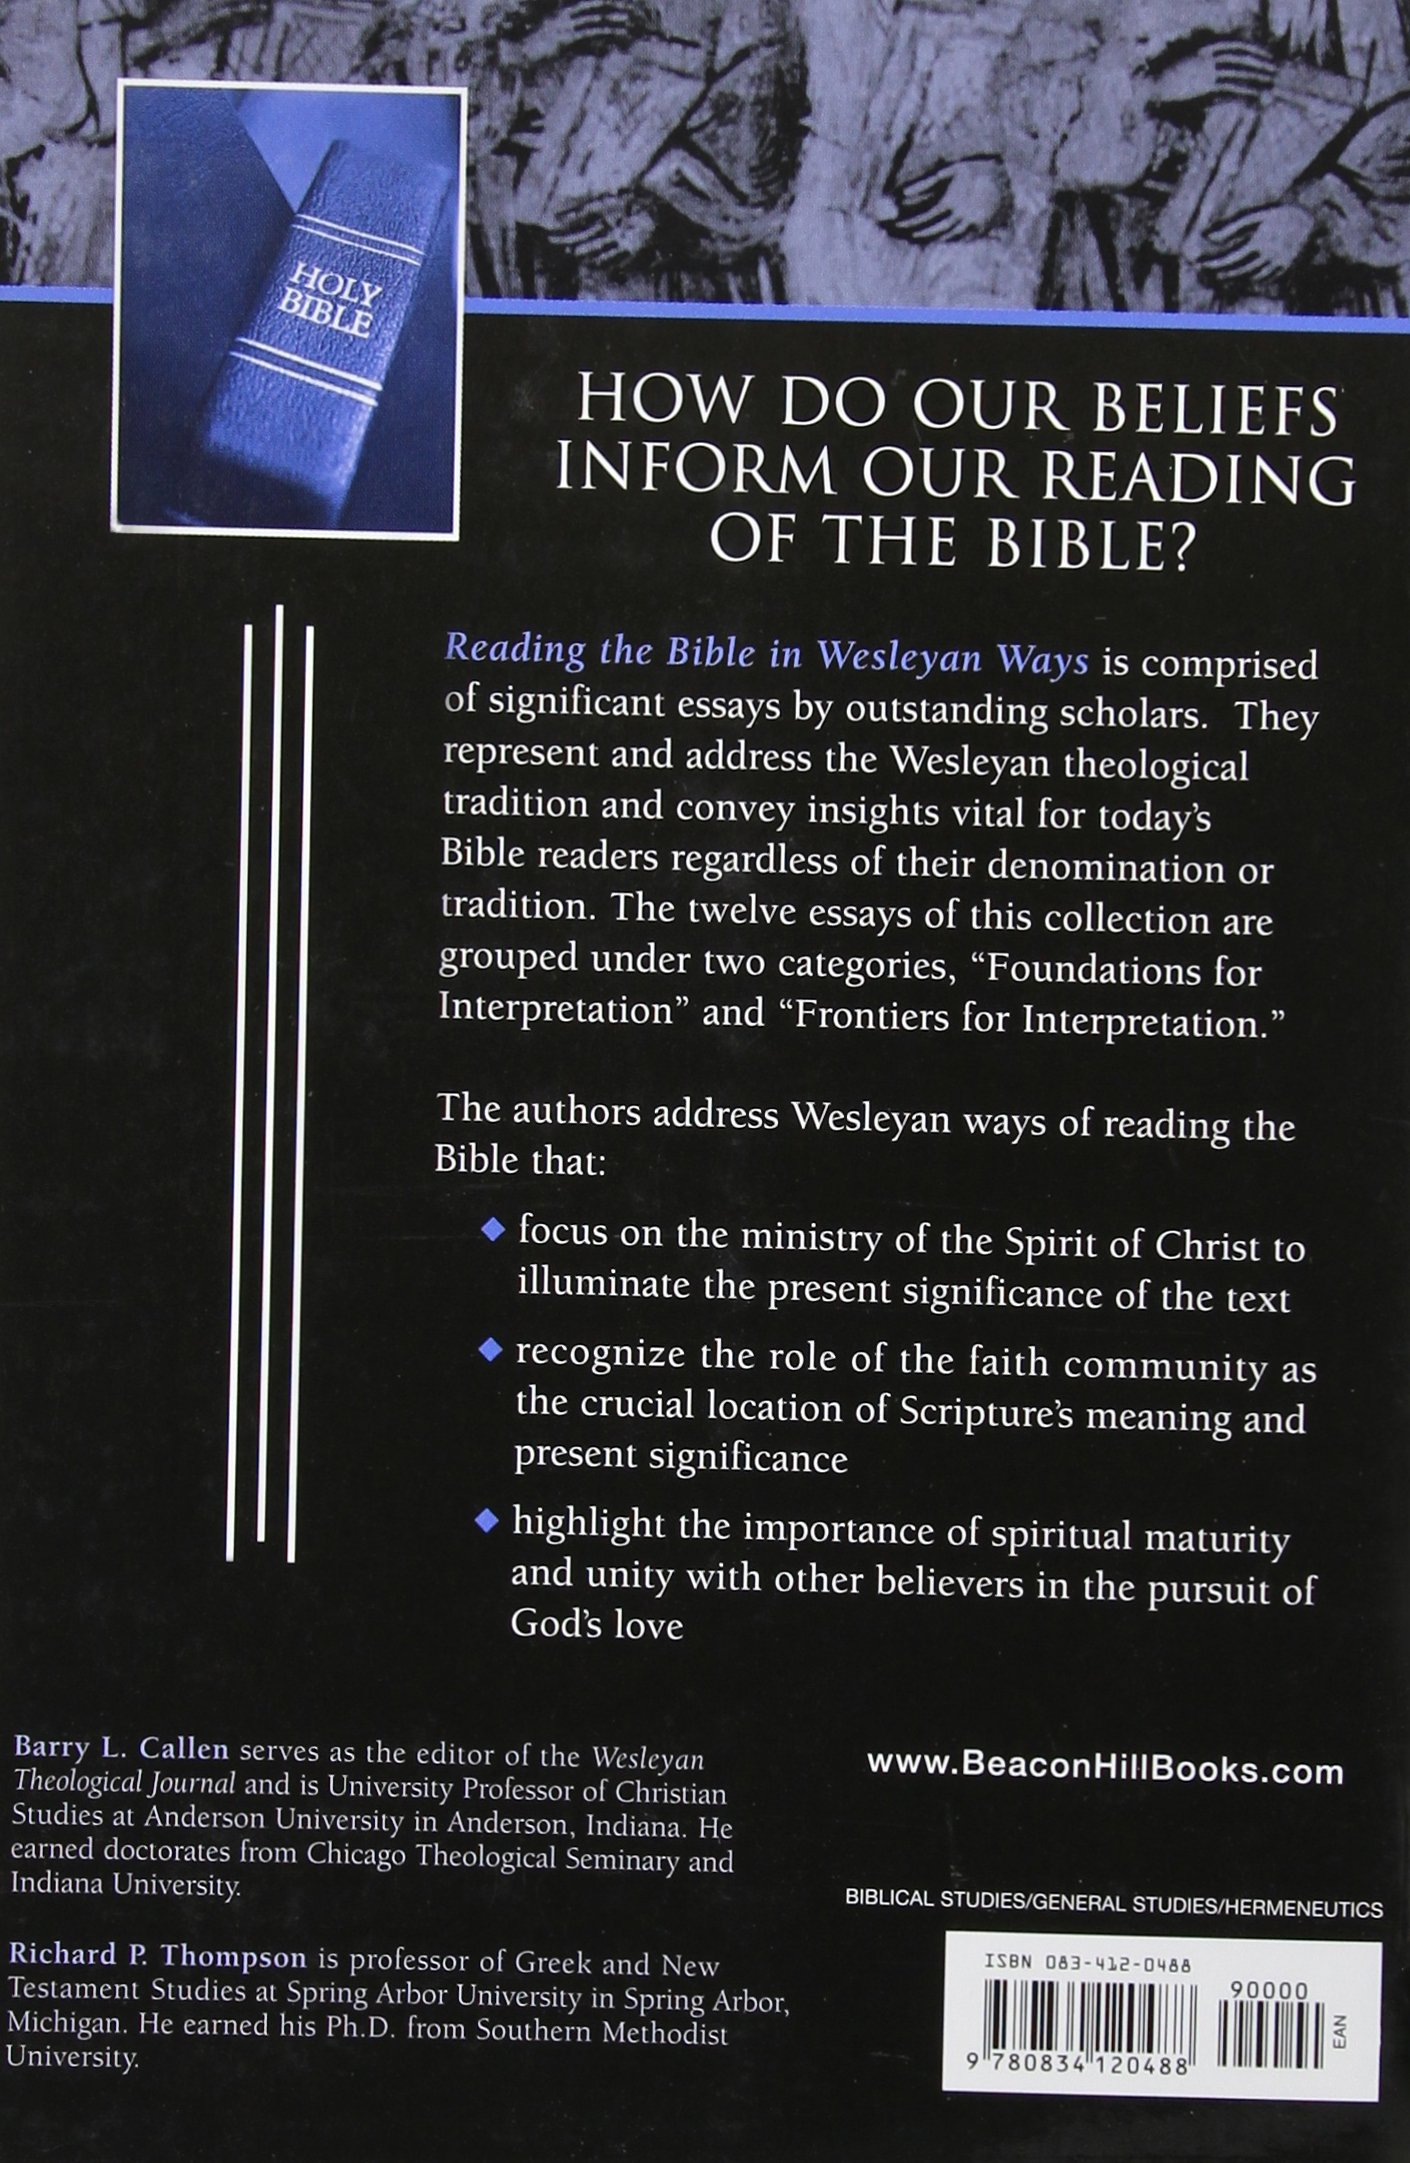 reading the bible in wesleyan ways some constructive proposals reading the bible in wesleyan ways some constructive proposals barry callen richard p thompson 9780834120488 com books